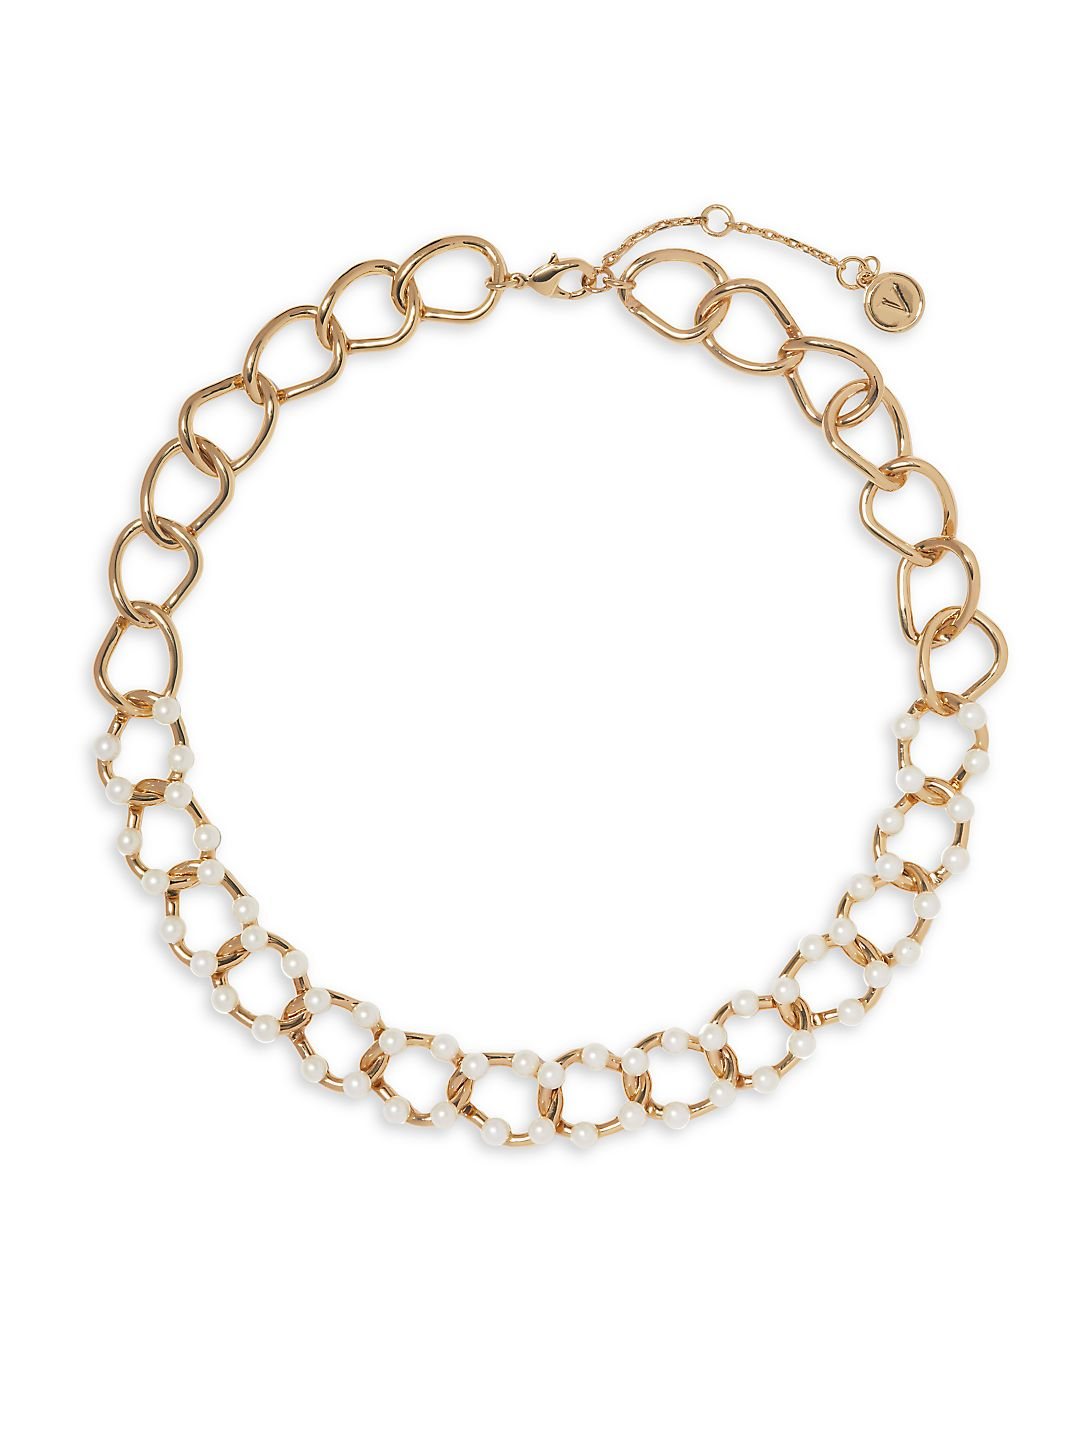 Goldtone and Faux Pearl Link Necklace